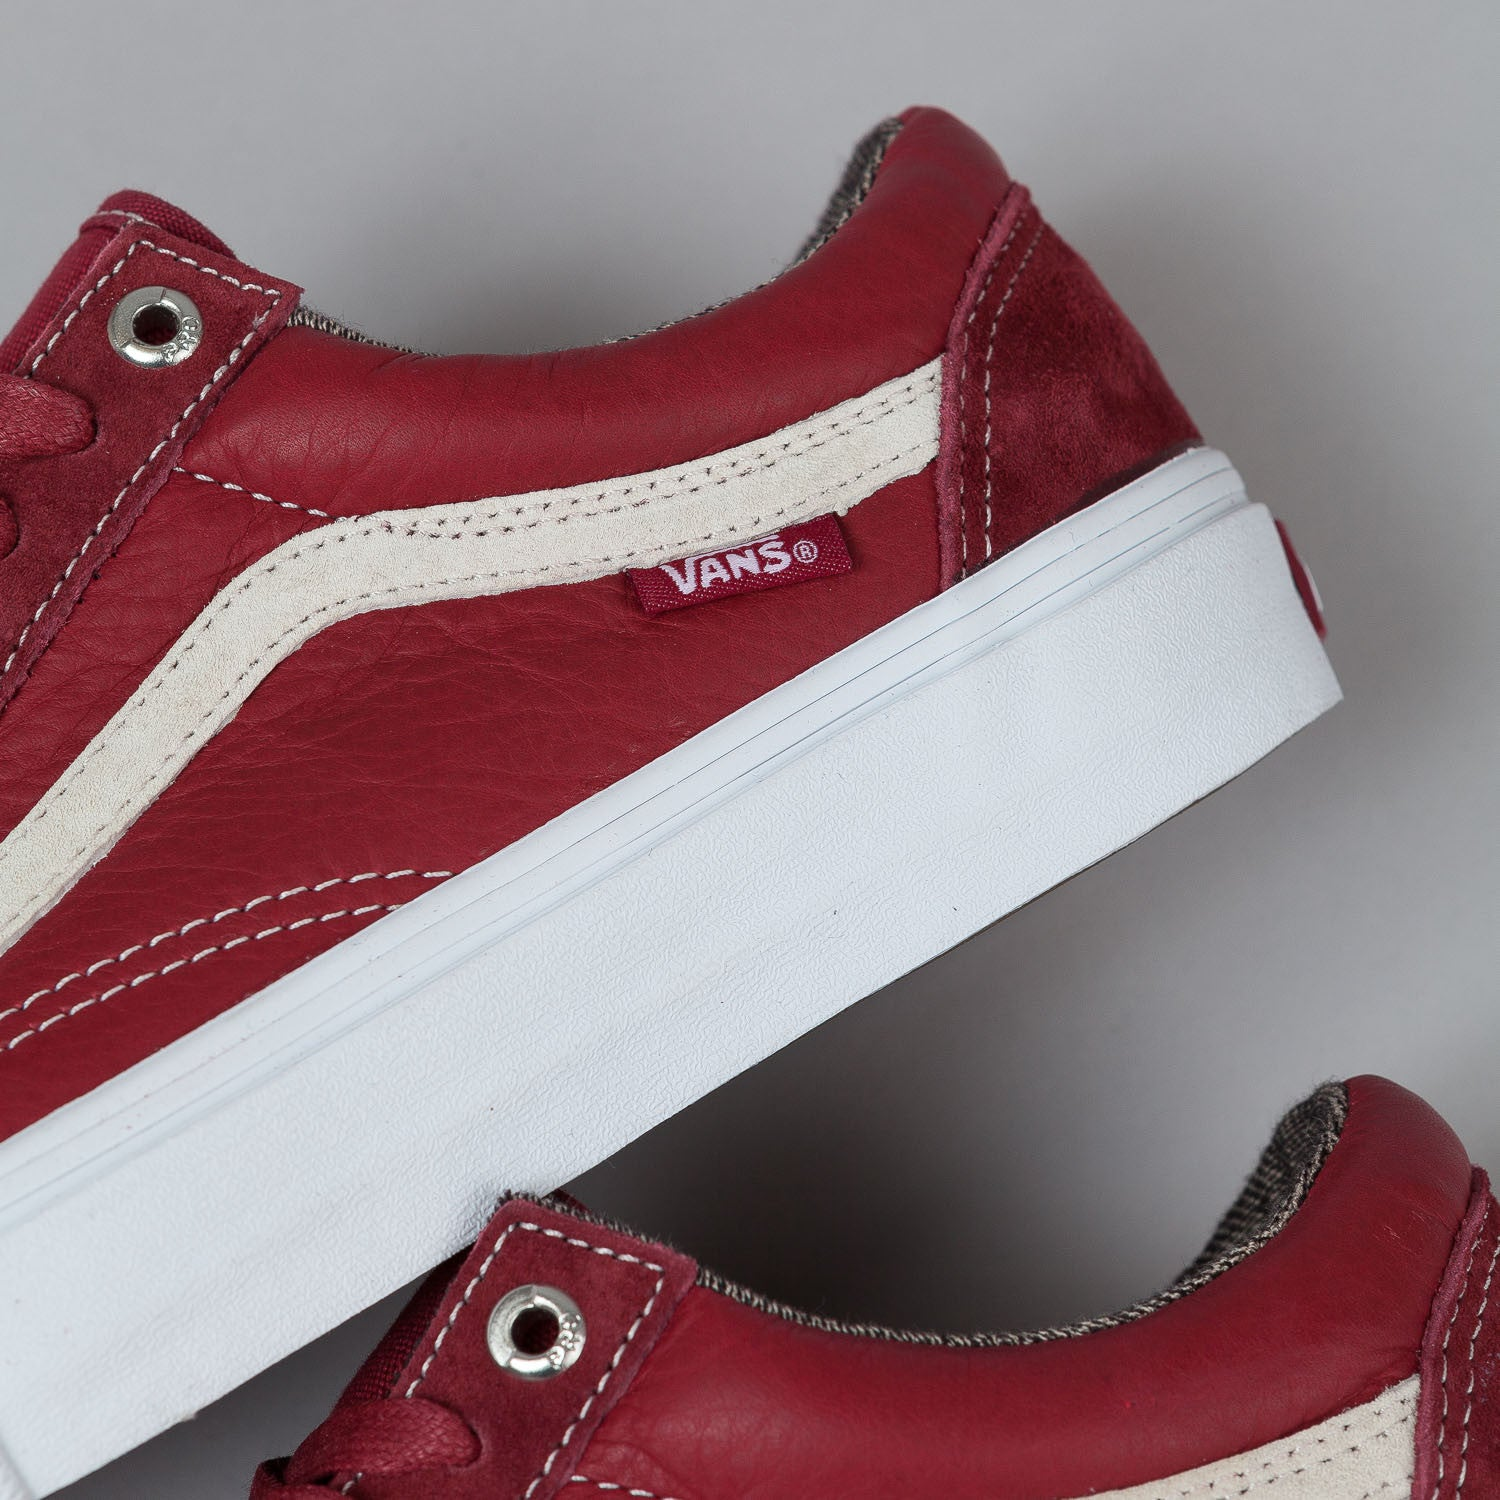 Vans Old Skool Pro Shoes - Dark Red